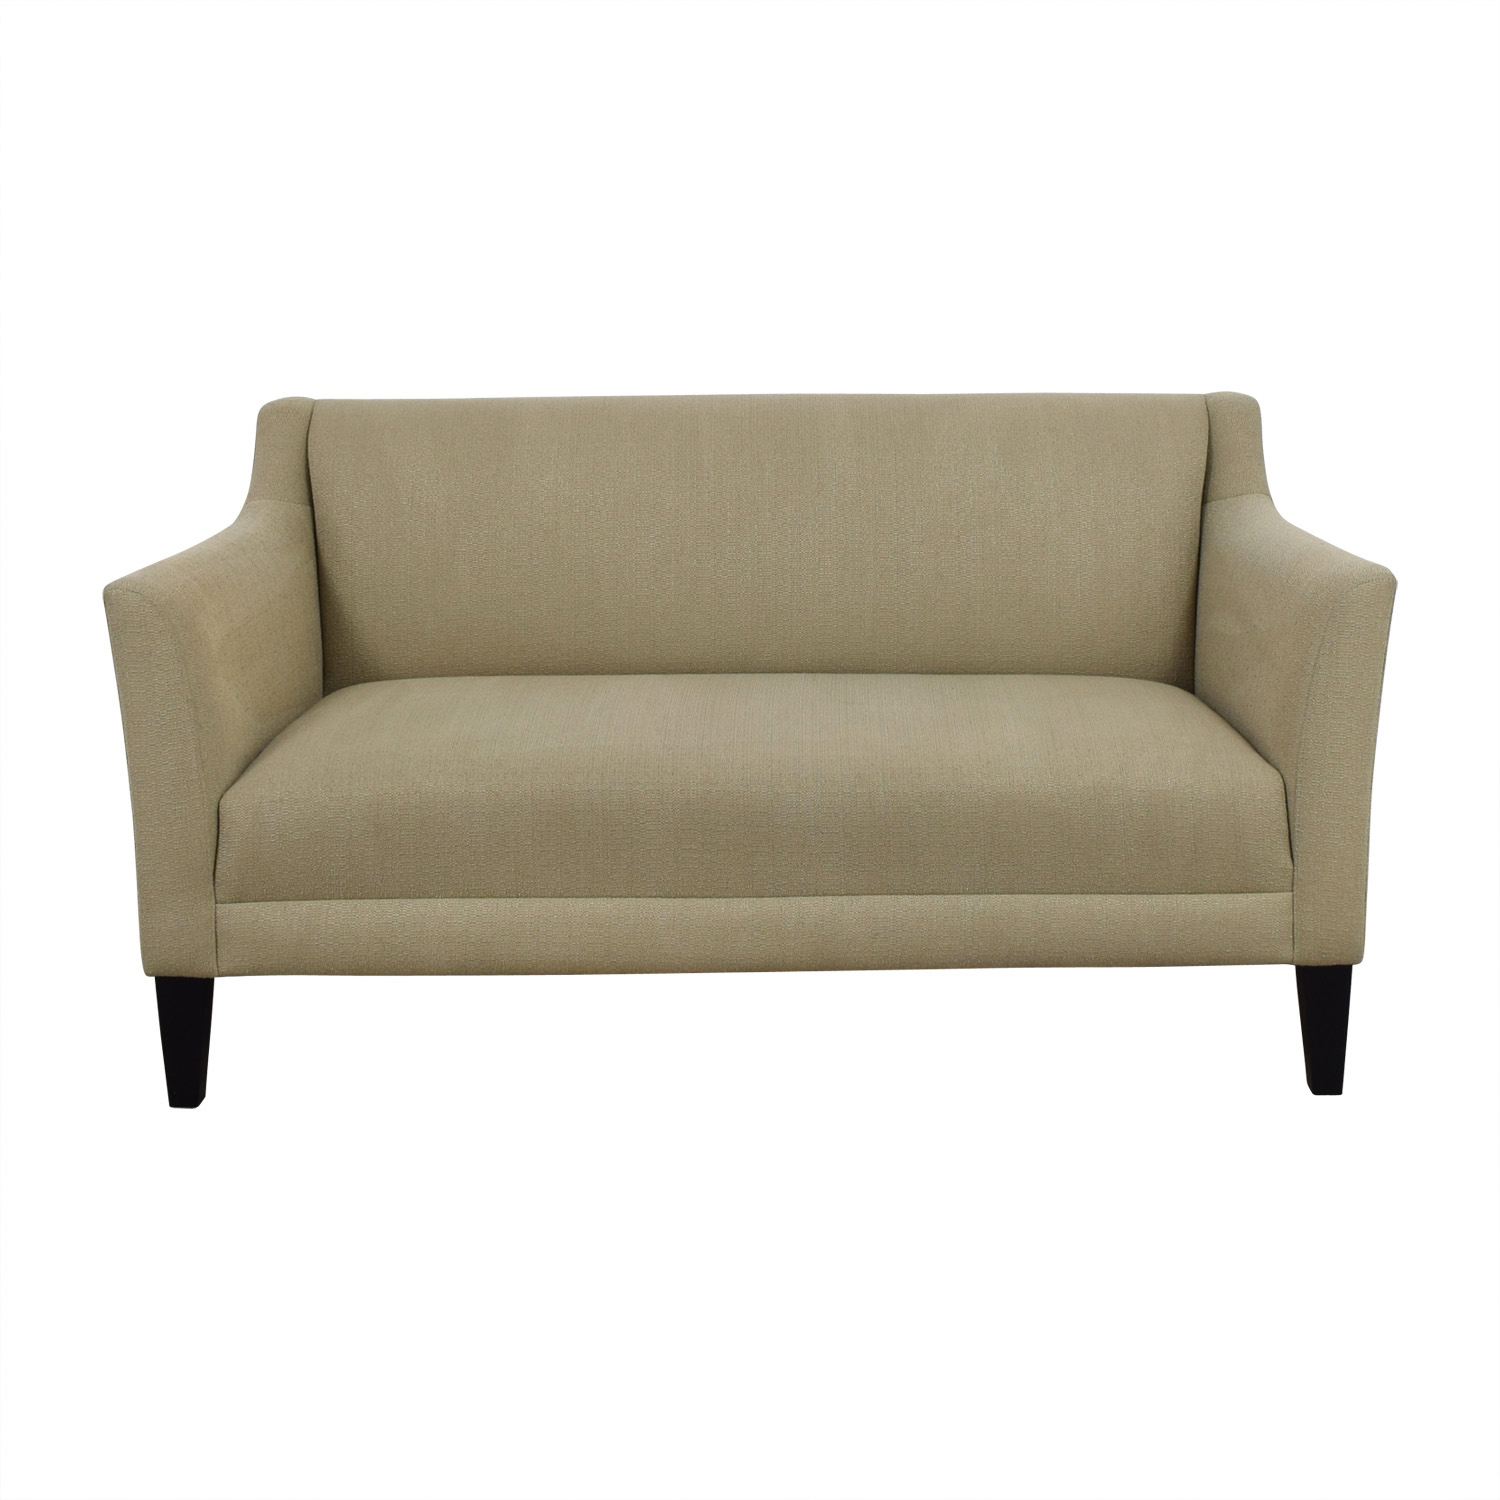 buy Crate & Barrel Margot Platinum Beige Loveseat Crate & Barrel